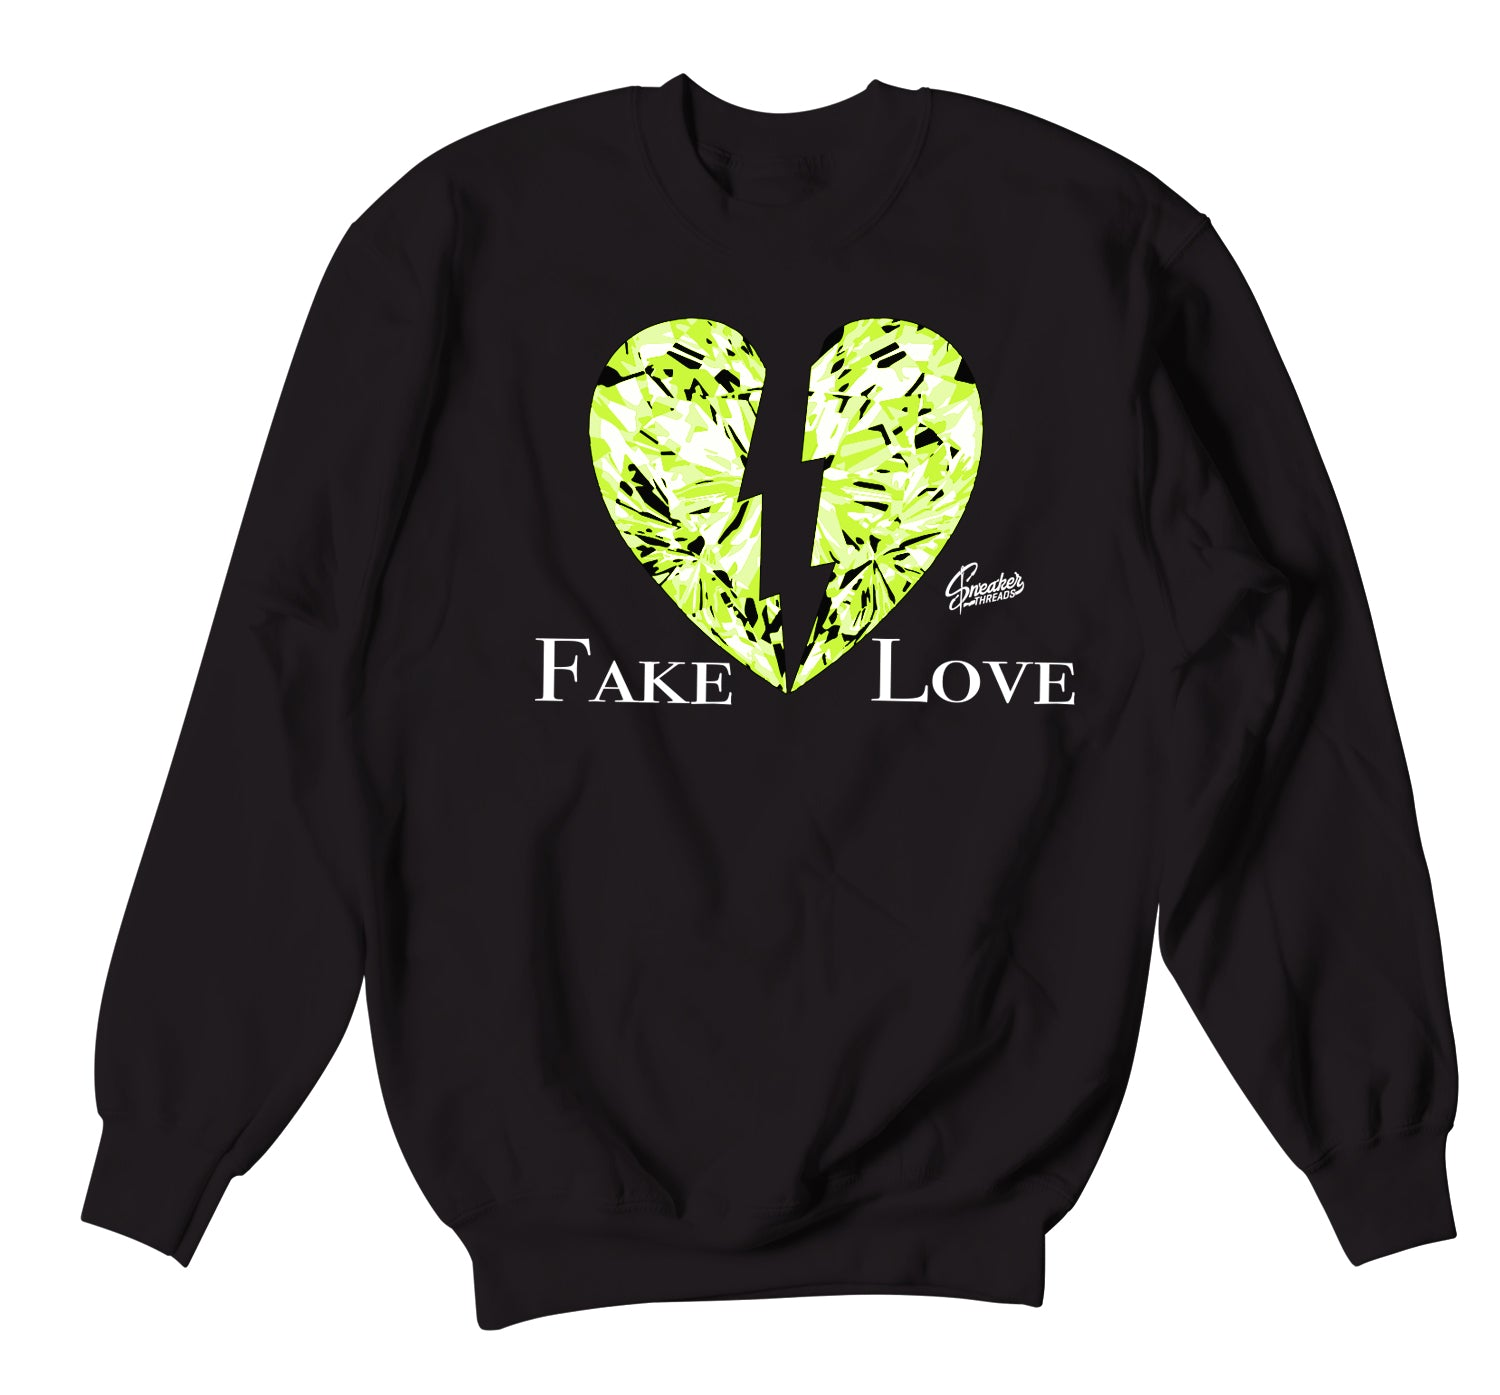 Foamposite Pro Volt Sweater - Fake Love - Black